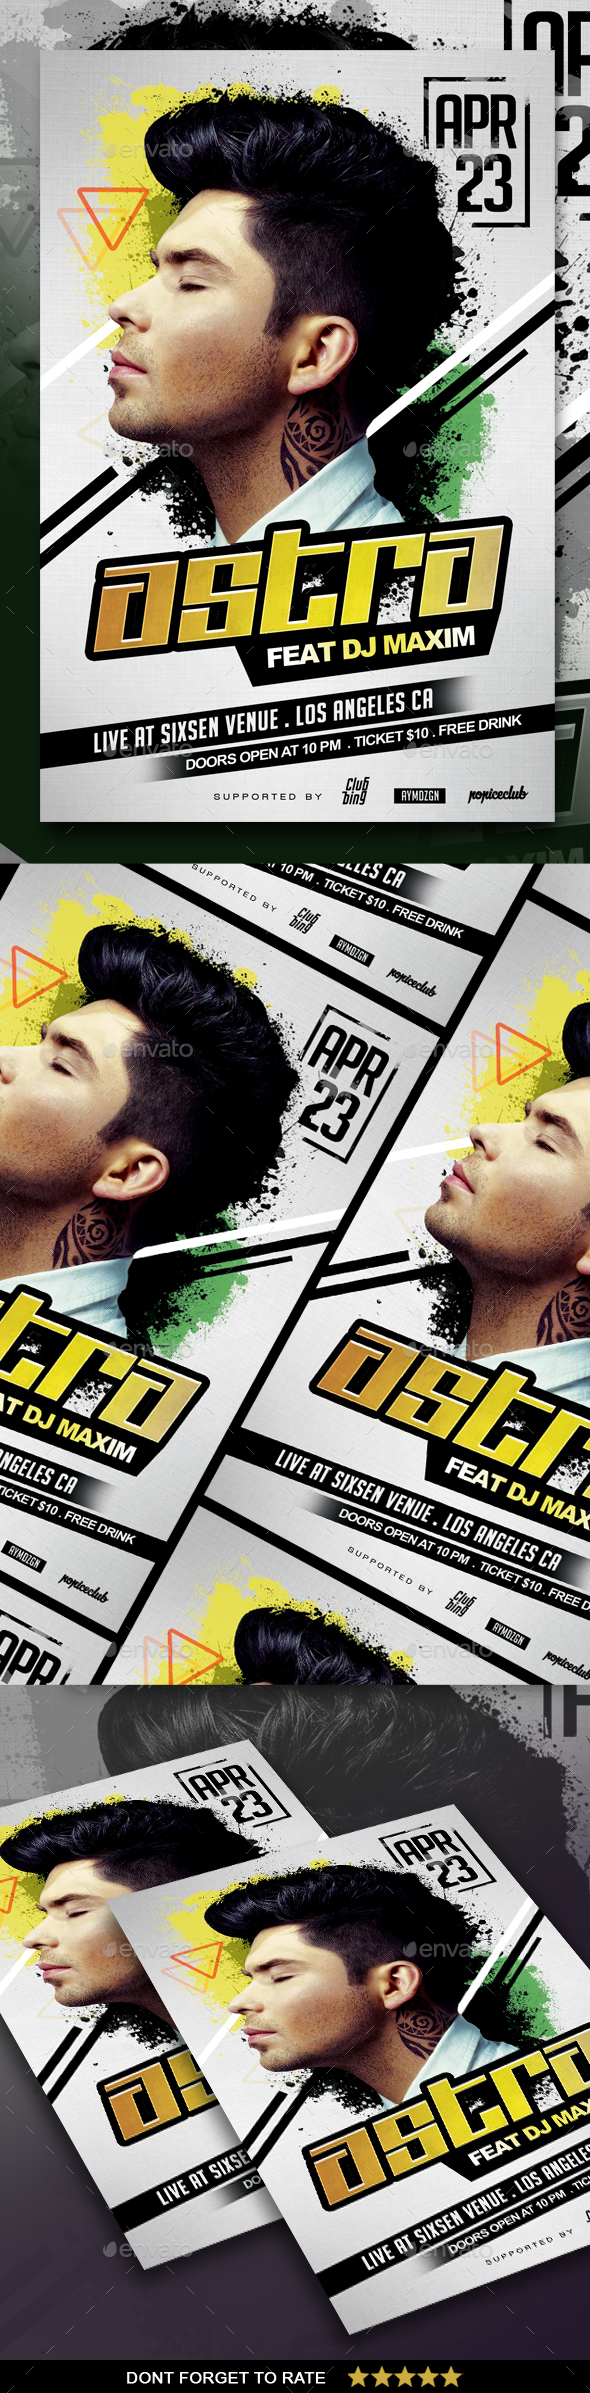 DJ Concert Flyer - Concerts Events